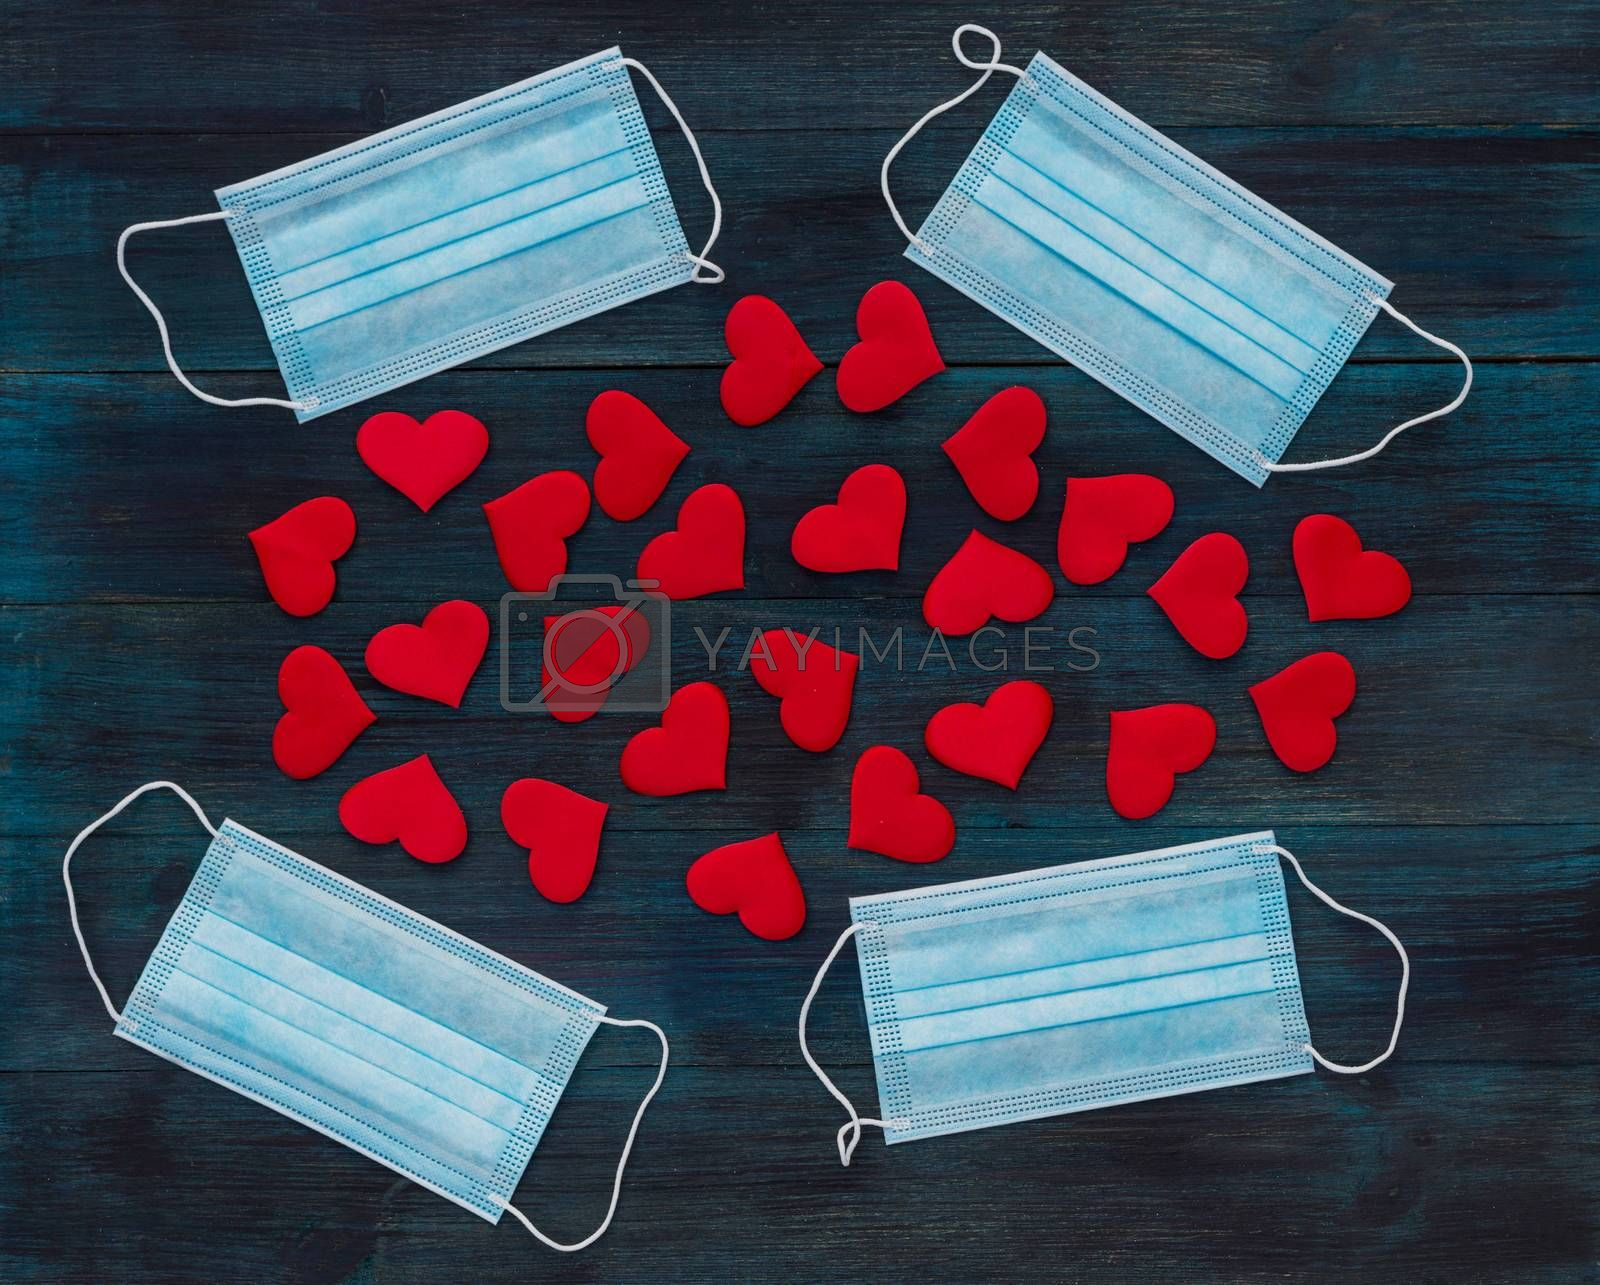 Valentine's day romantic background with medical masks symbolizing coronavirus pandemic and social distancing